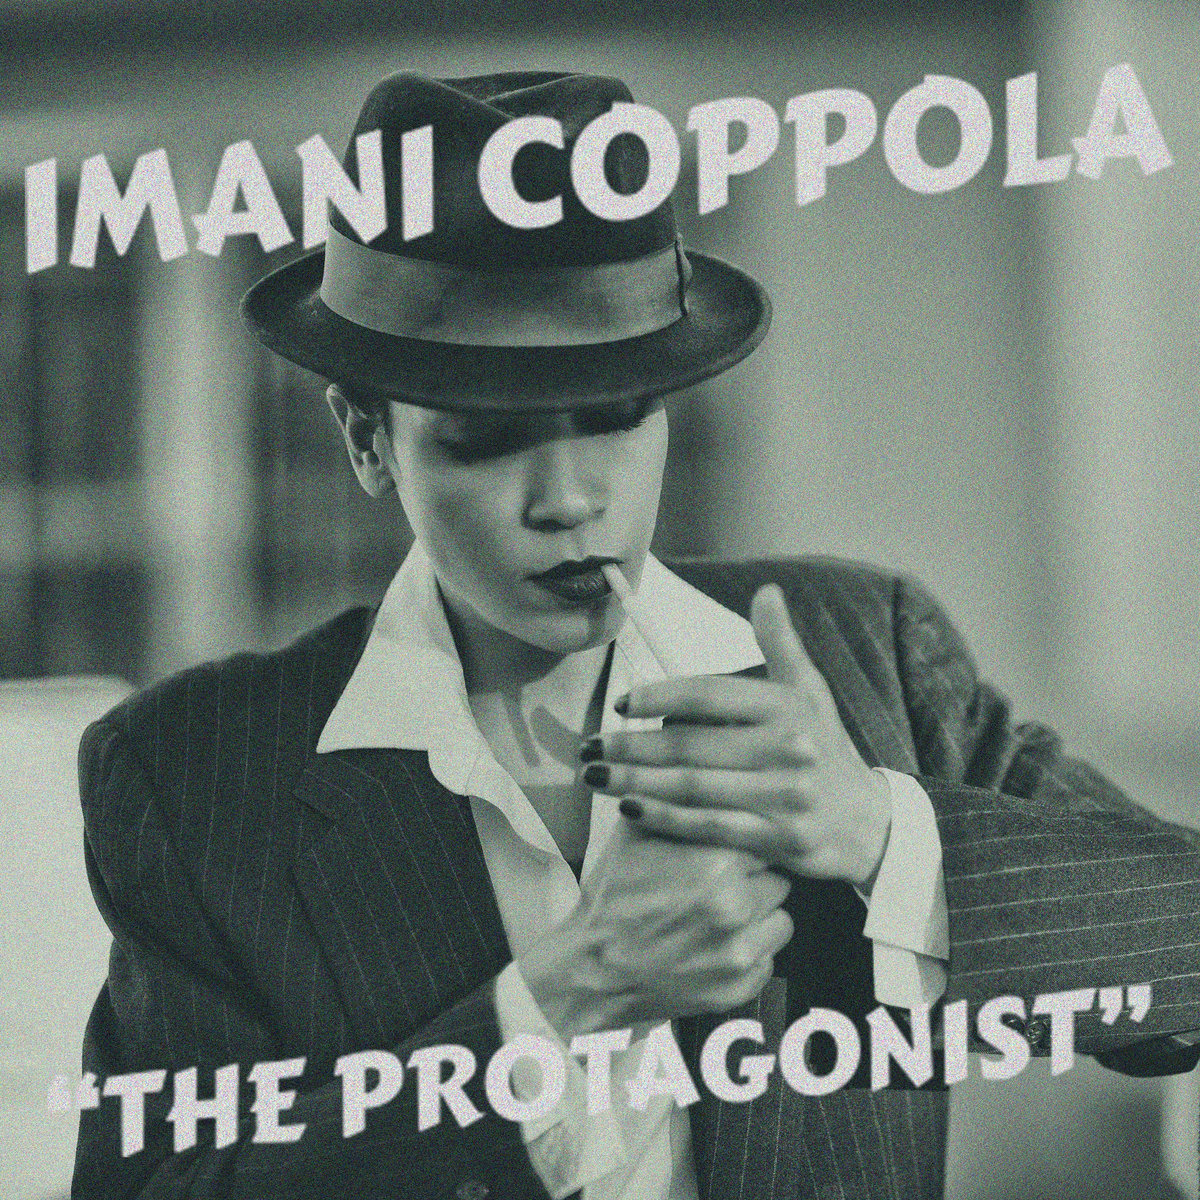 Imani Coppola – The Protagonist